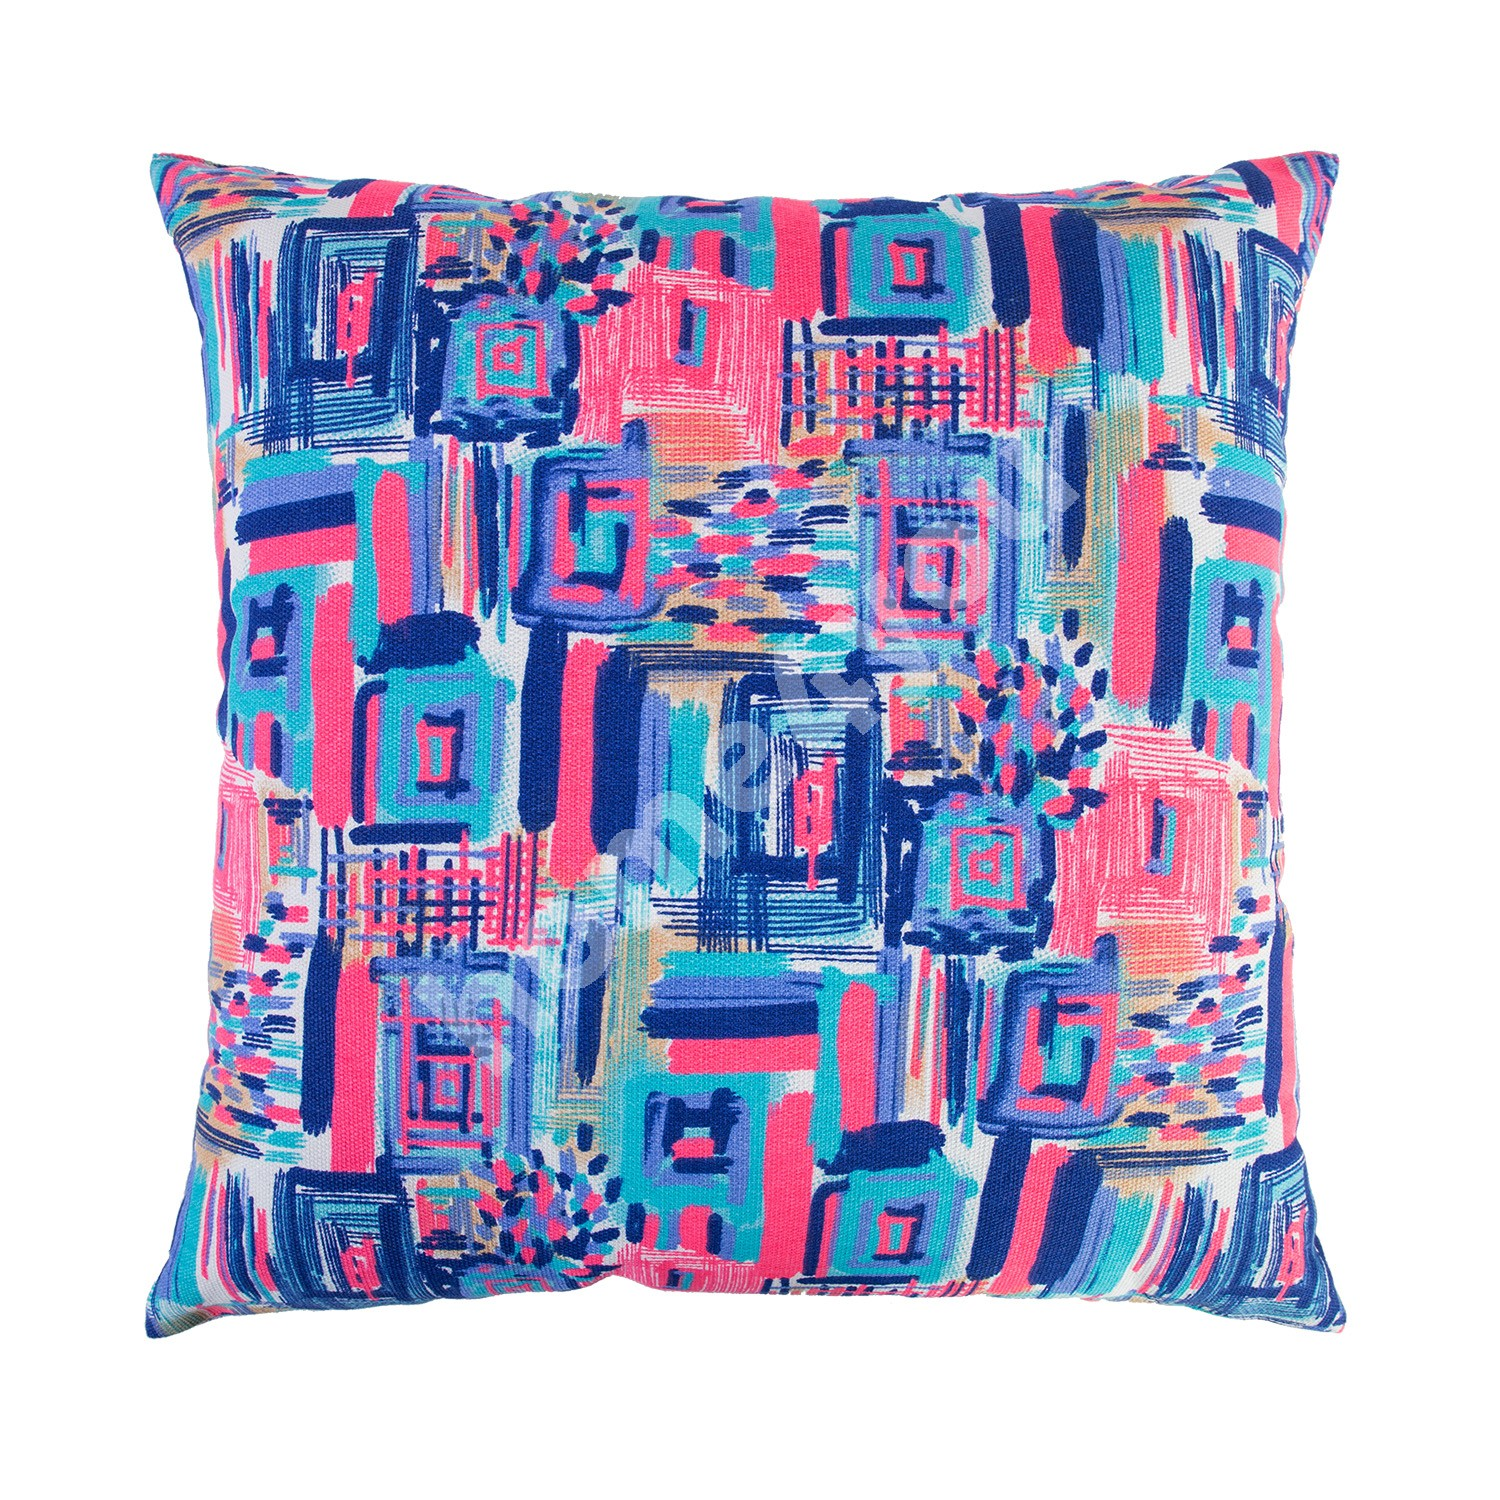 Cushion SUMMER 45x45cm, blue/pink brush strokes, 50%polyester, 50%cotton, fabric 119